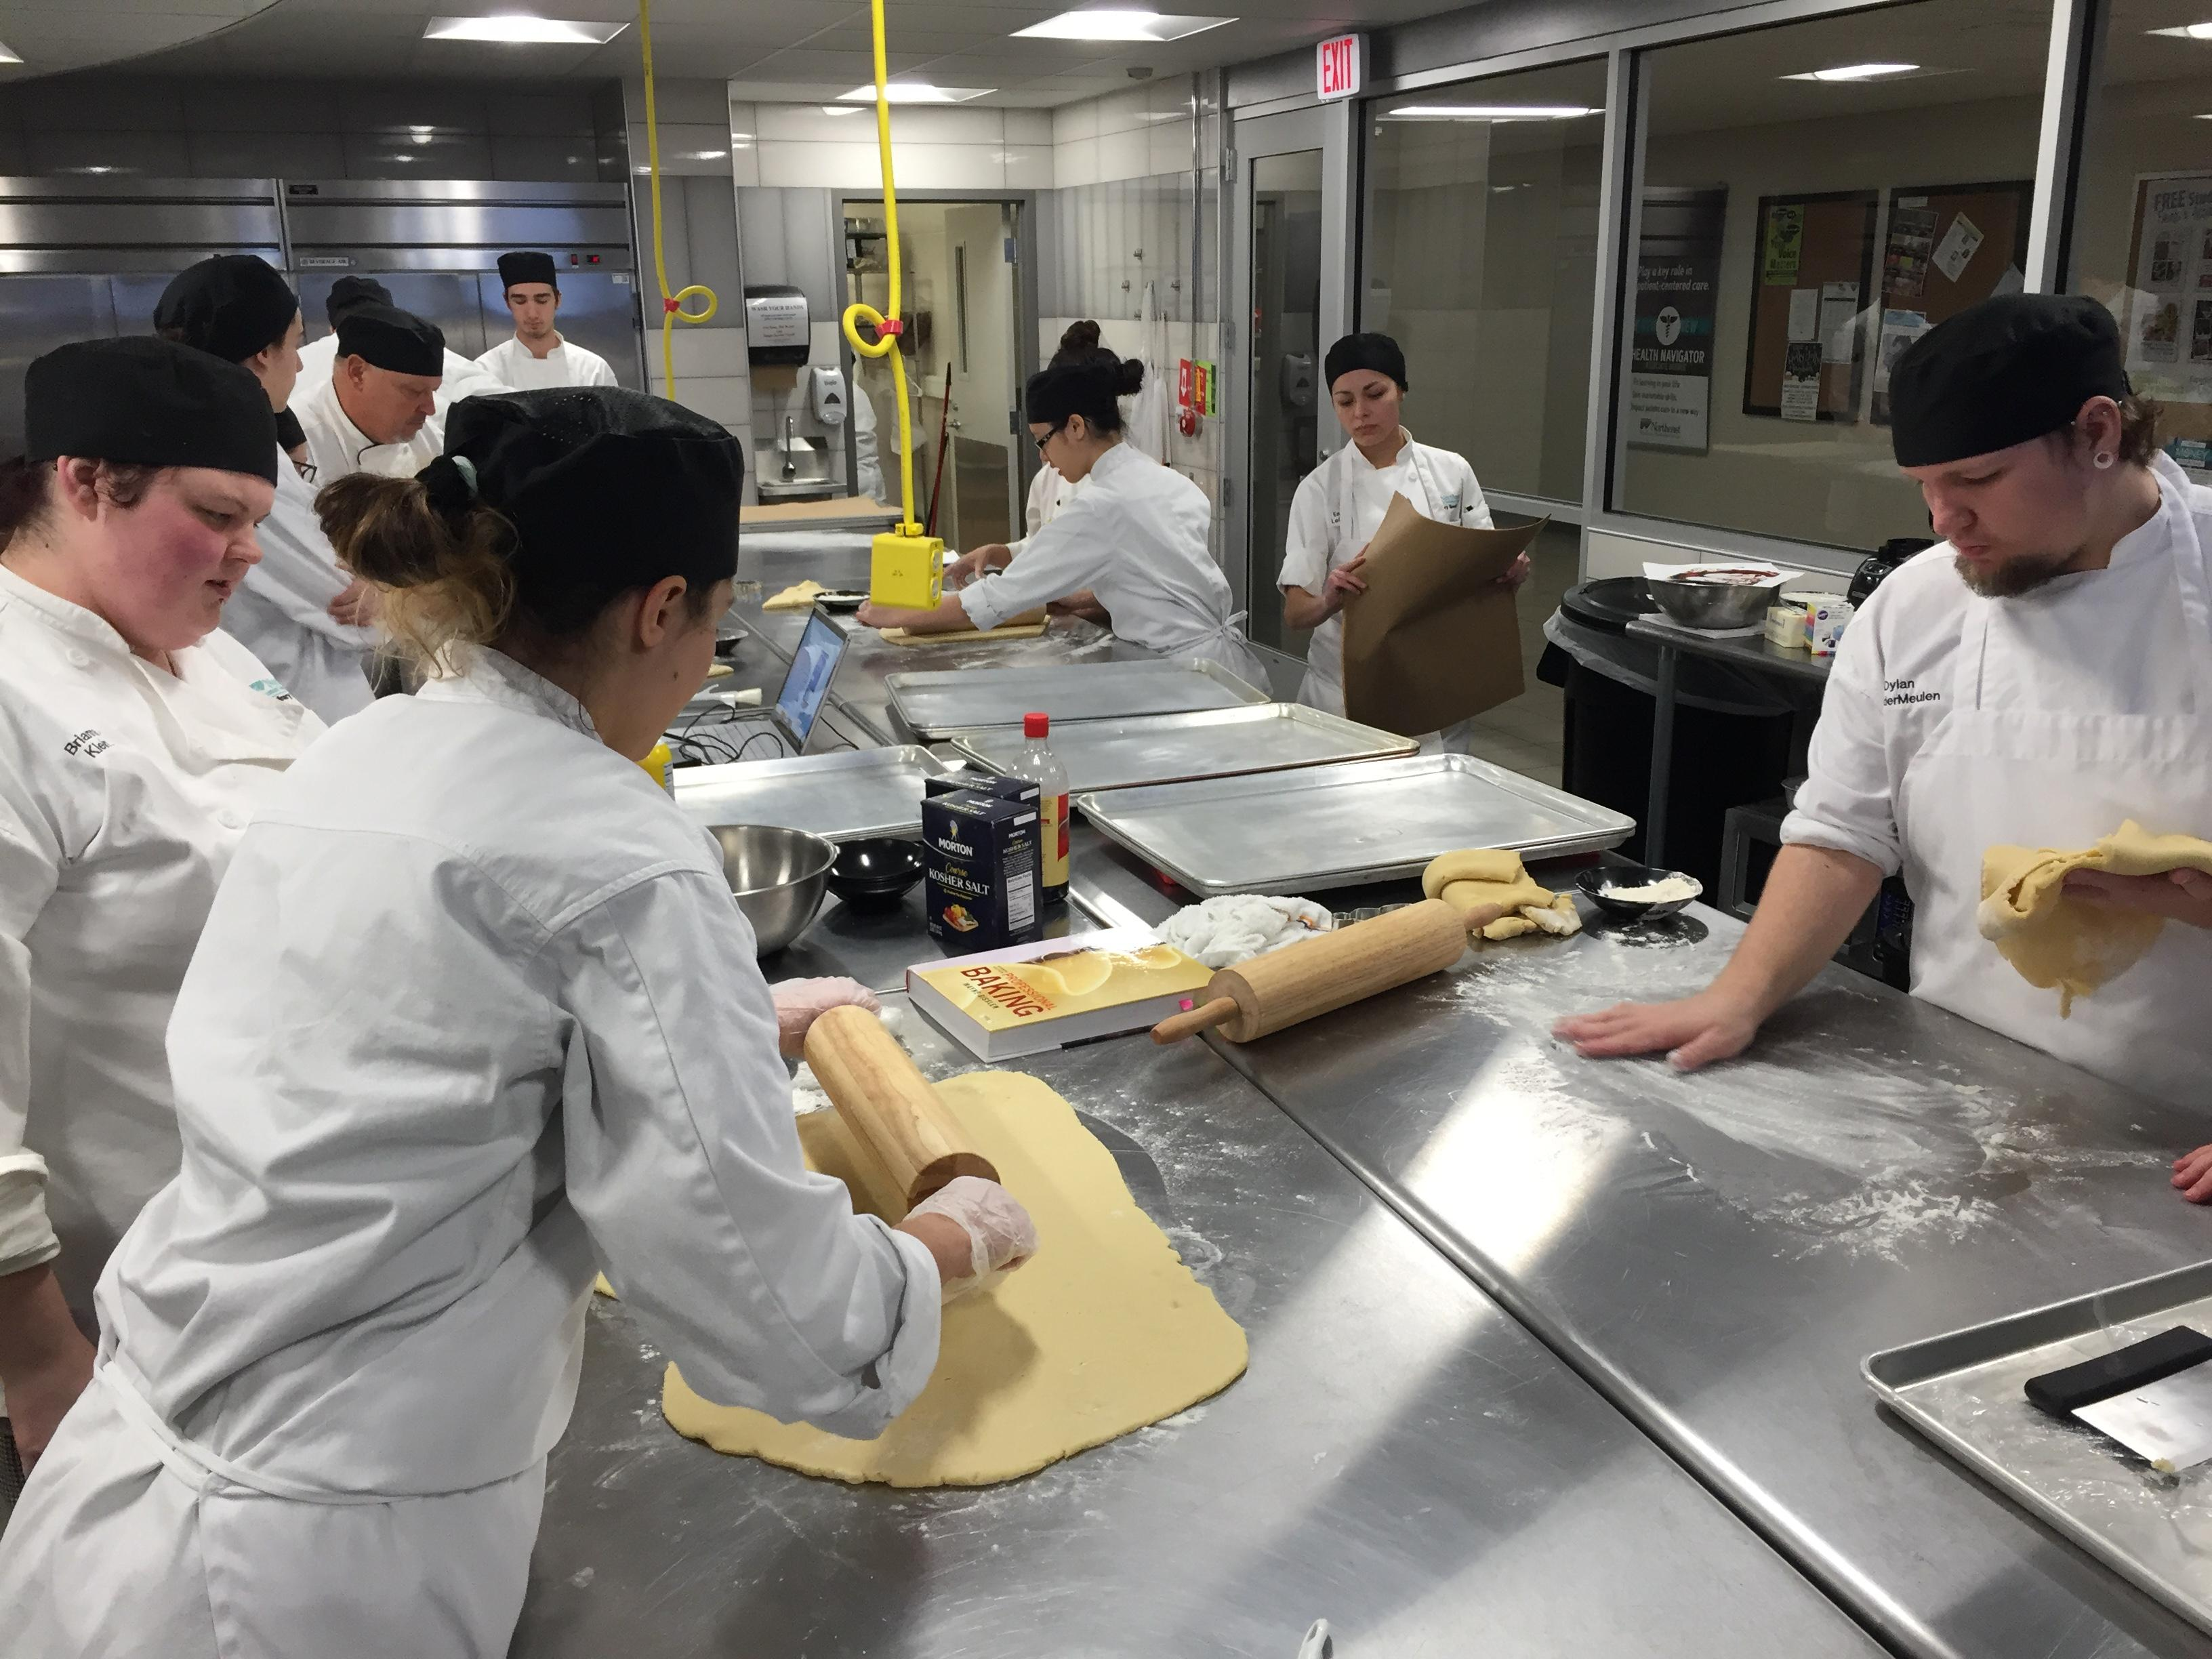 NWTC students roll cookie dough in culinary lab, December 11, 2017 (WLUK/Eric Peterson)